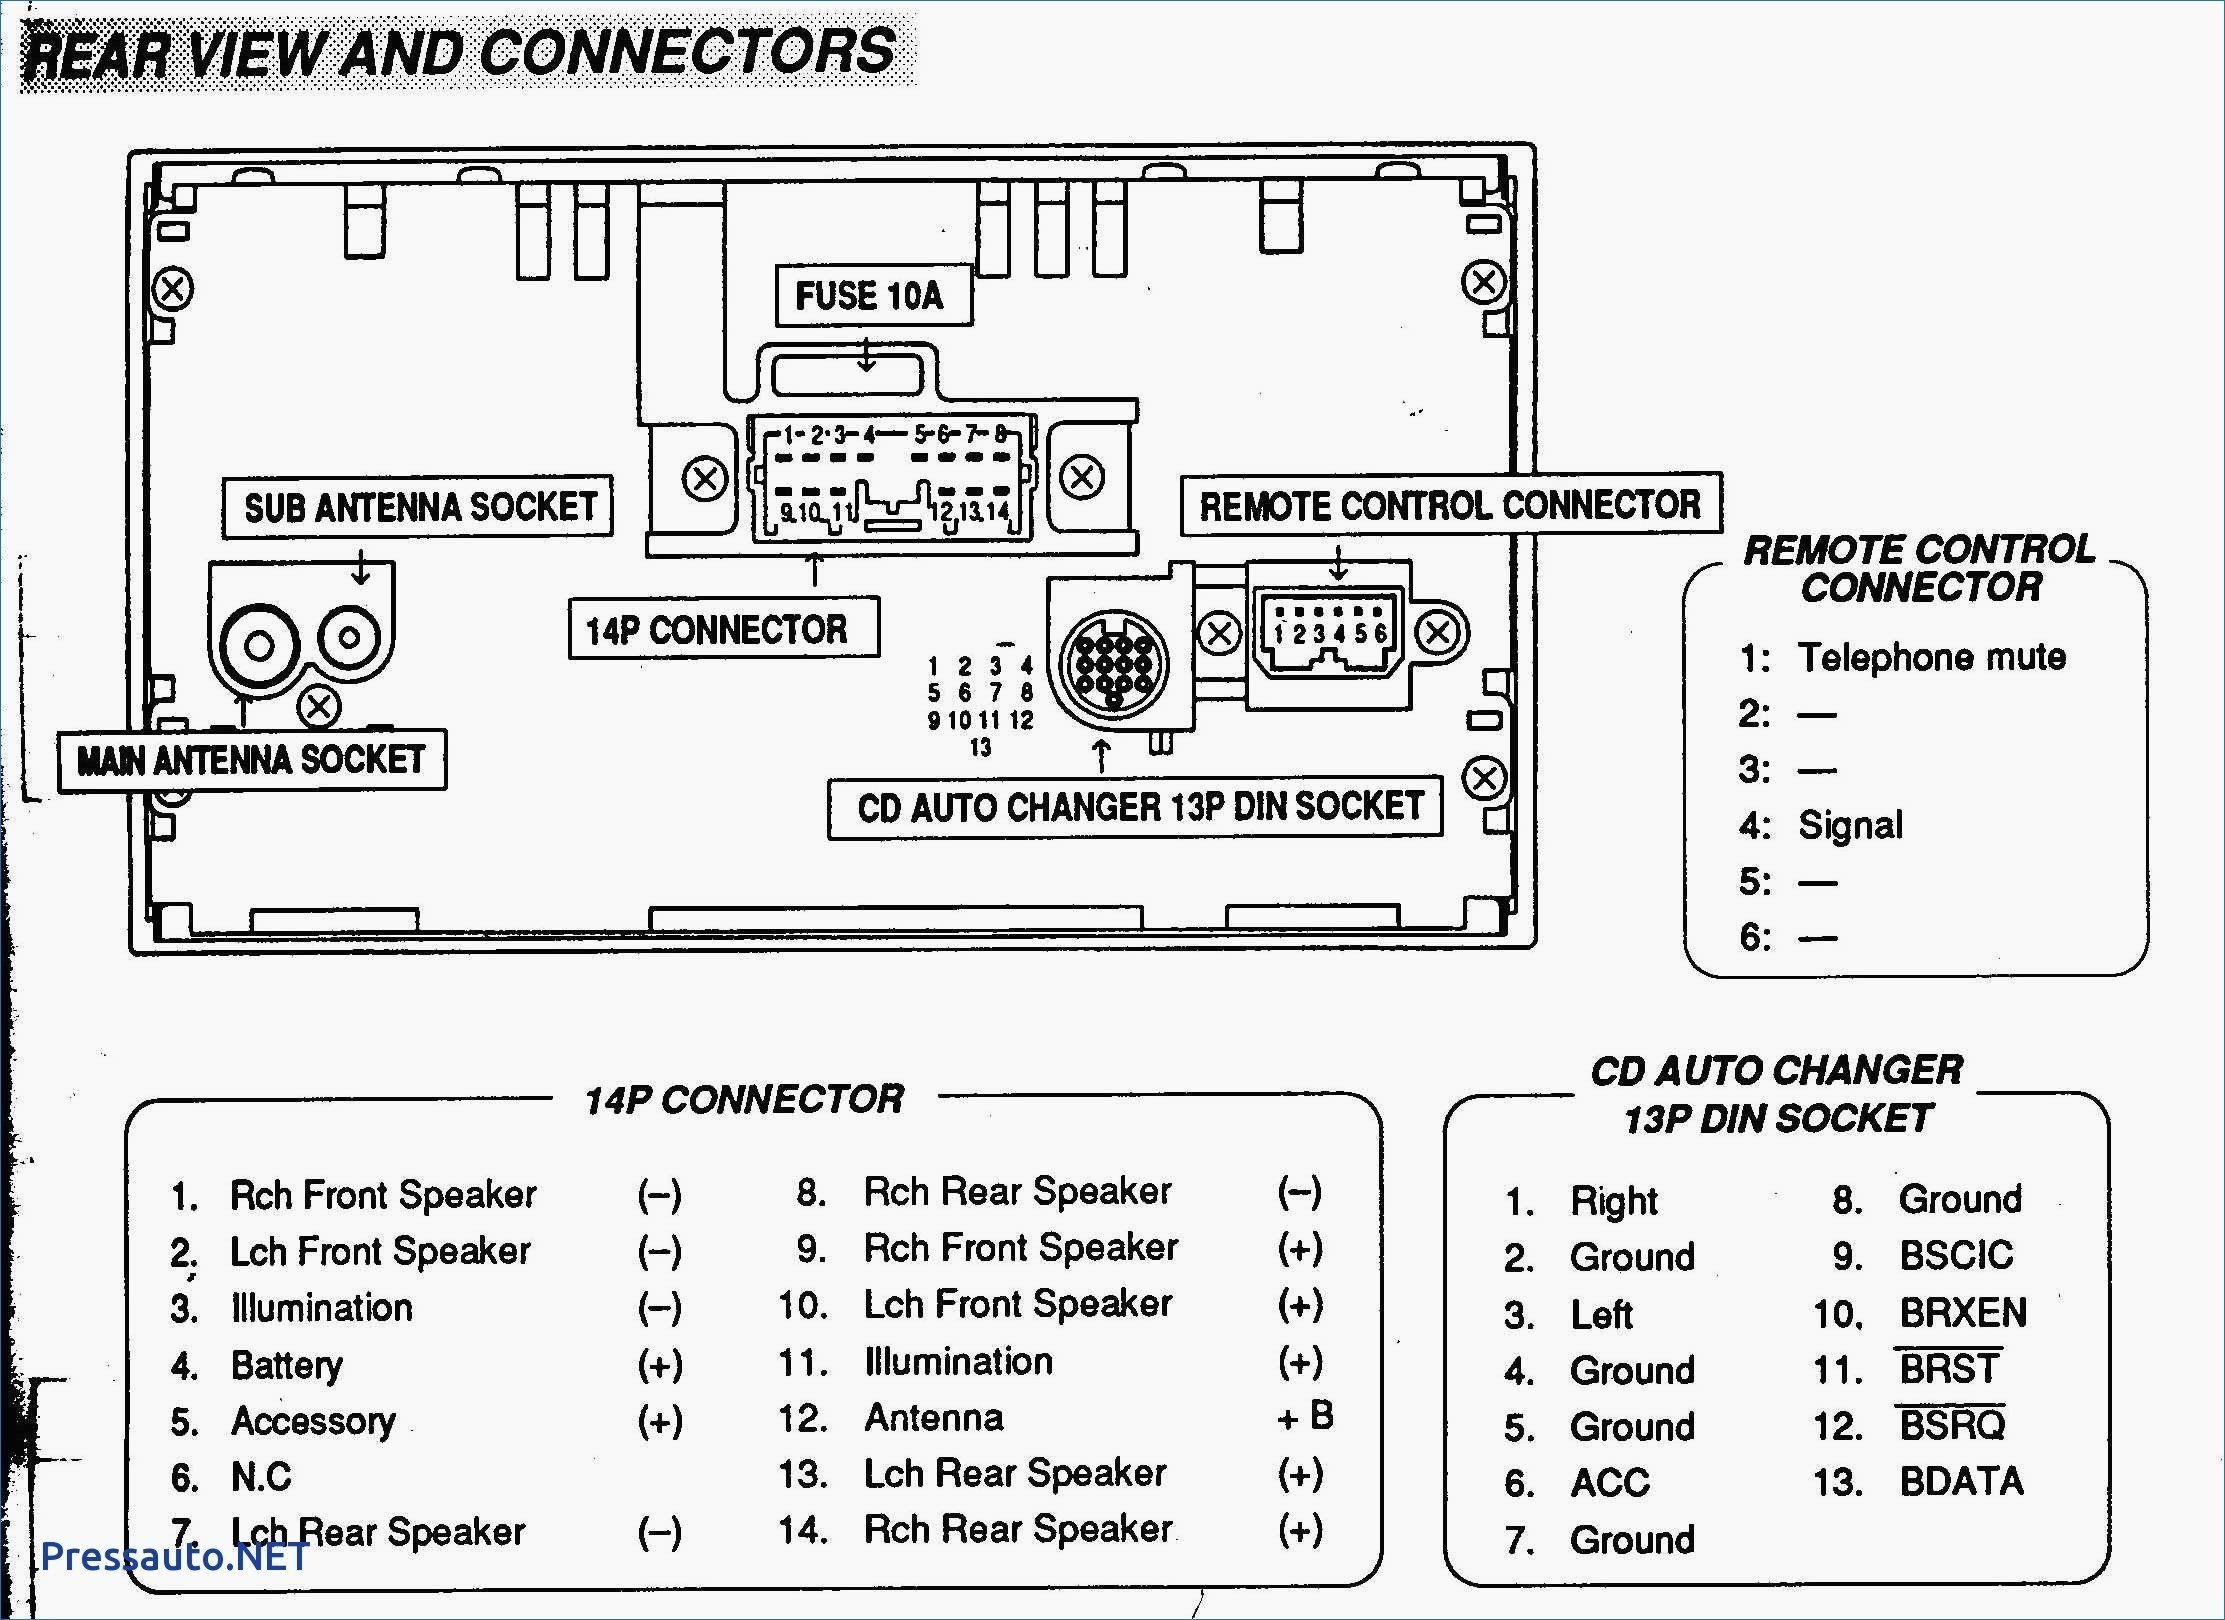 2004 mazda wiring diagram wiring library rh 100 dreamnode online 2004 Mazda 6 Common Problems 2004 Mazda 6 Common Problems